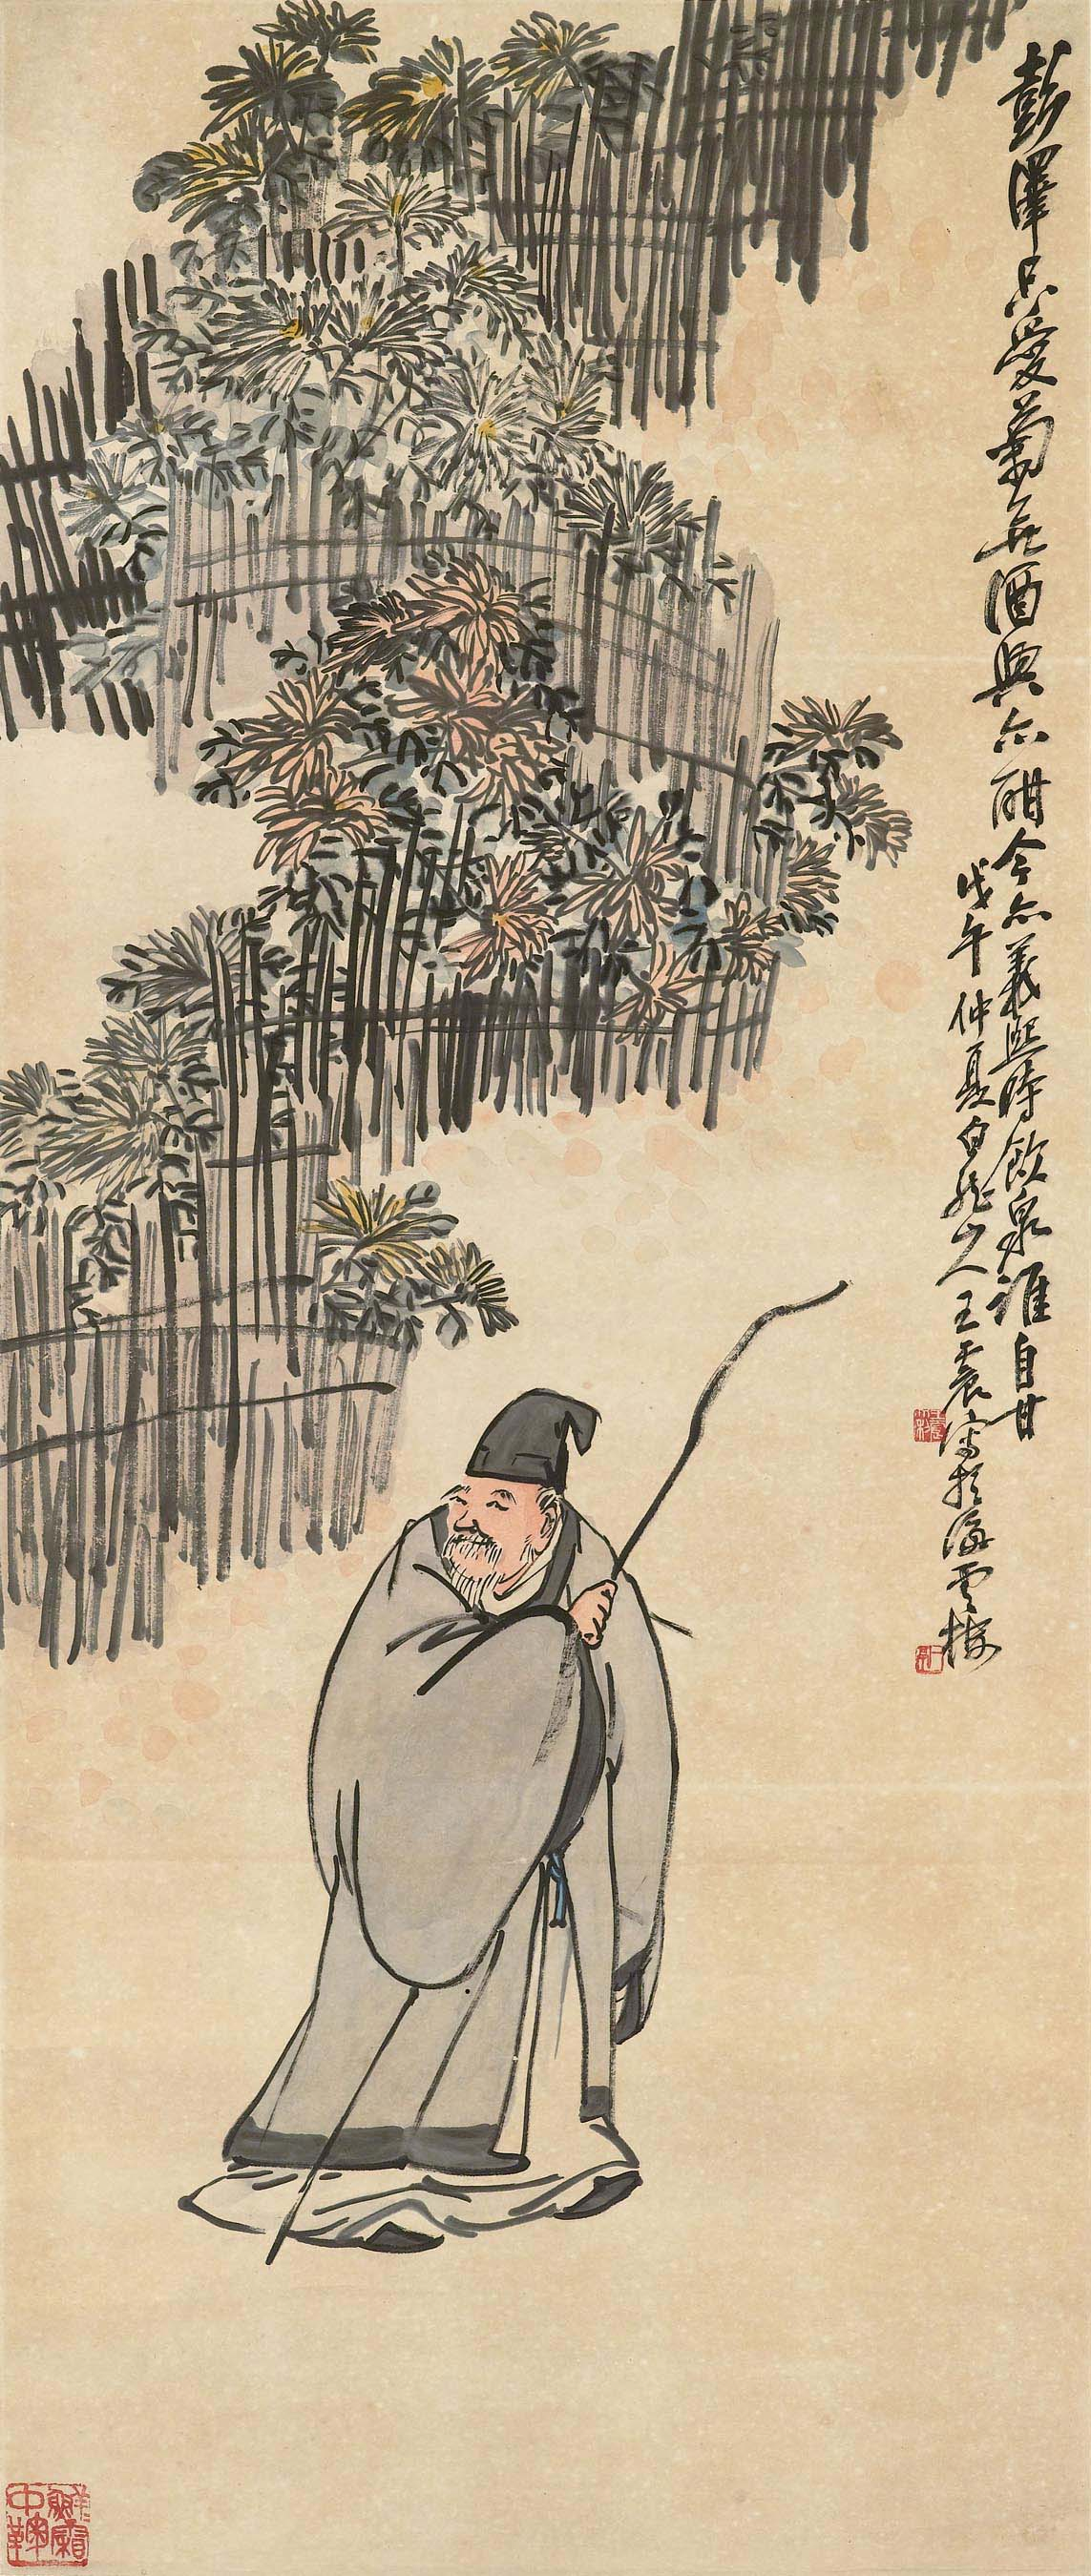 Poet in the Garden of Chrysanthemum